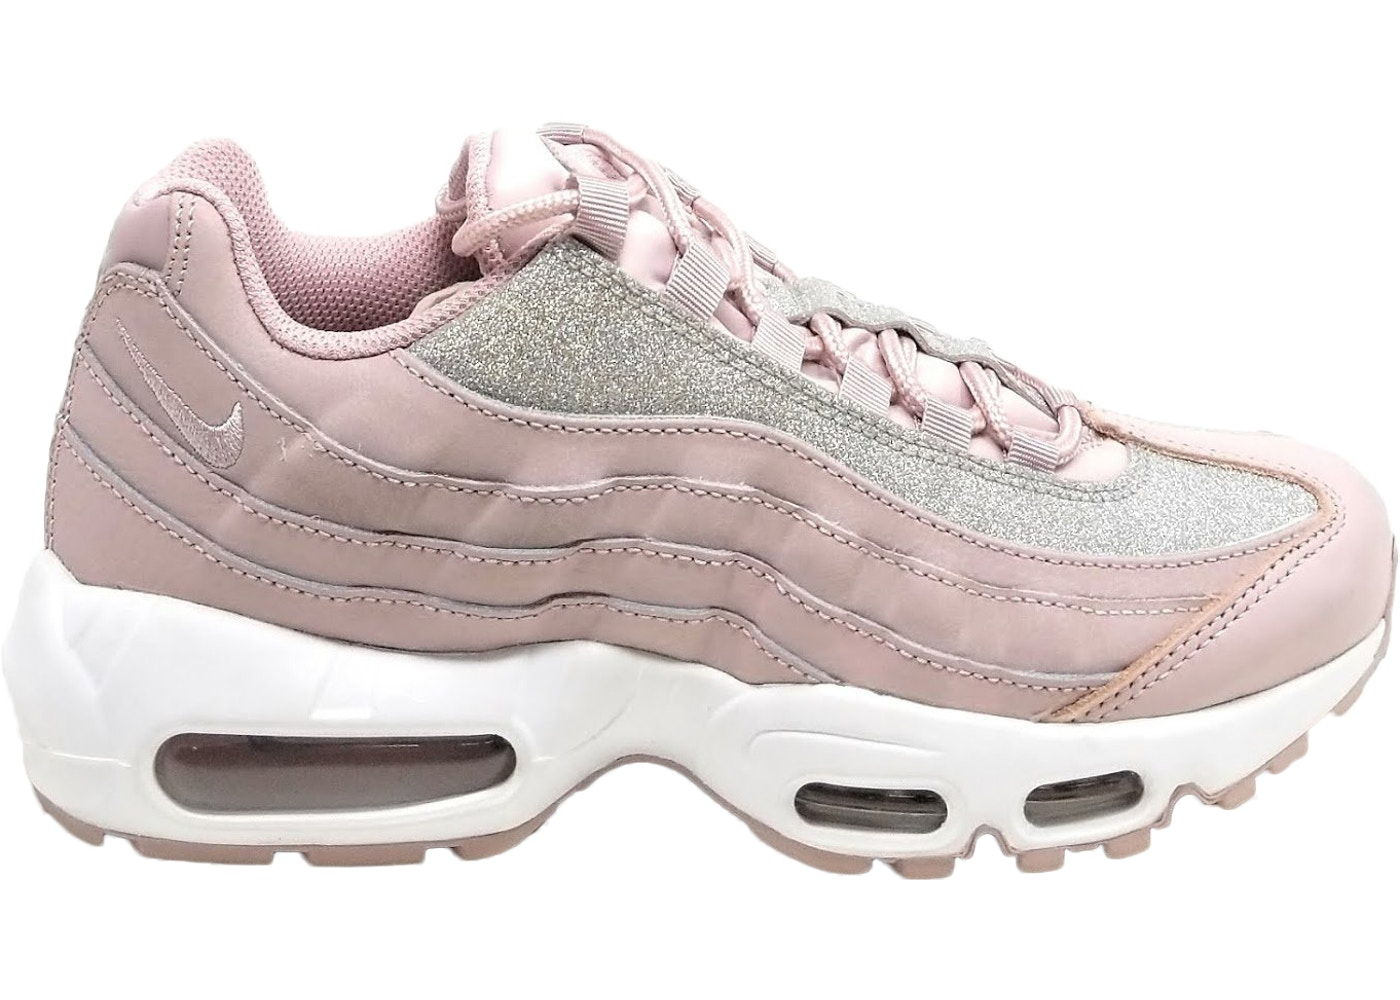 super popular d7616 5bd9a Air Max 95 Particle Rose (W) - AT0068-600